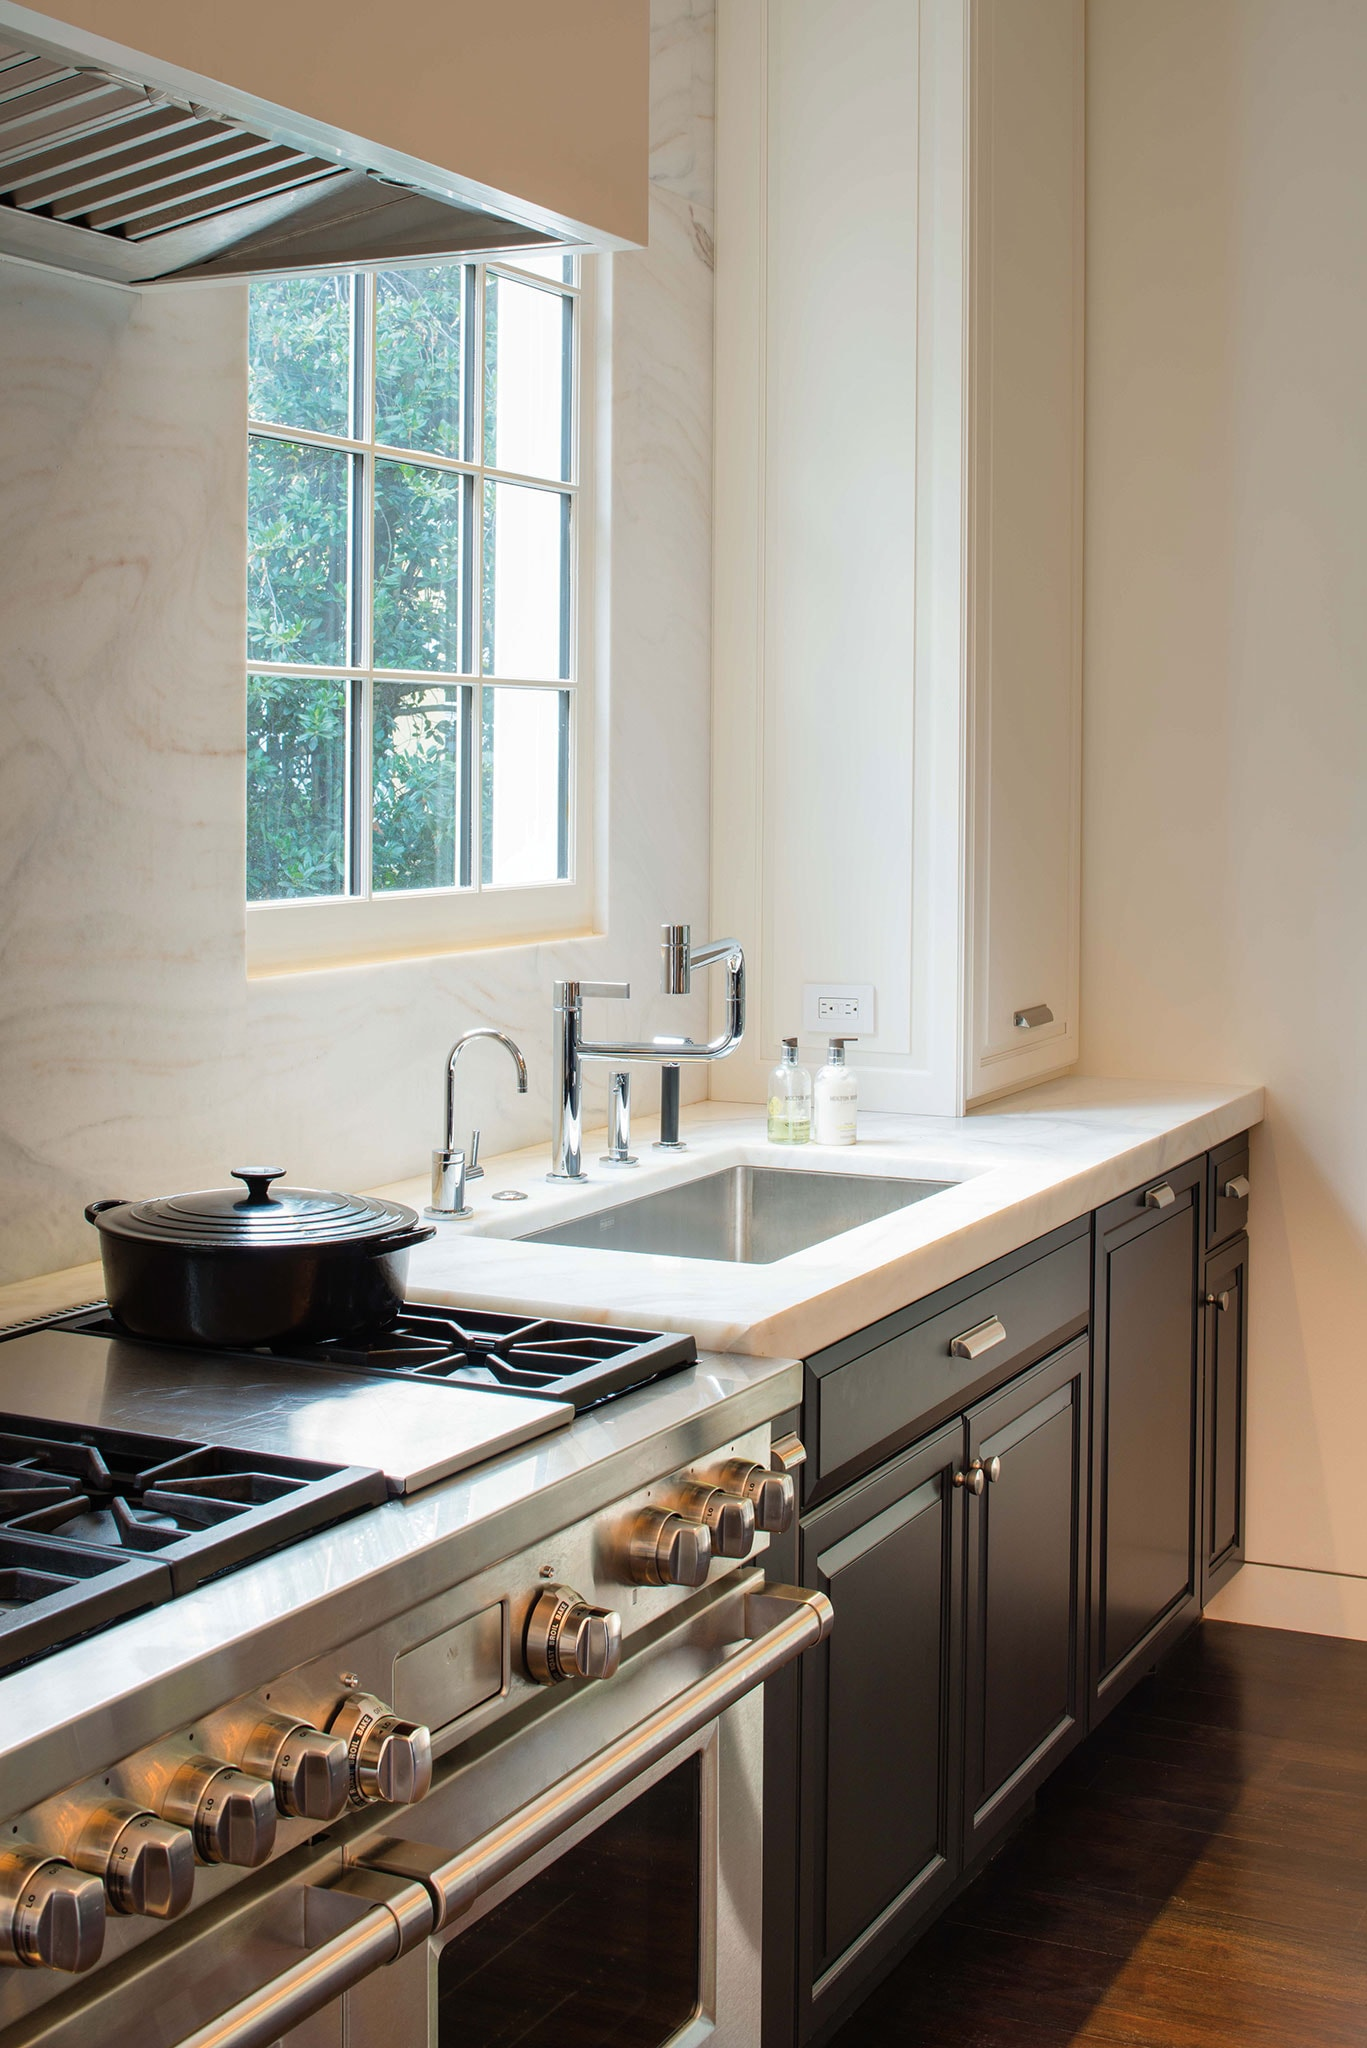 Is Often A Clientu0027s First Request In A Kitchen Renovation. (Sometimes  Theyu0027re Even Eager To Wield The Crowbar.) But In The Case Of This  Washington, ...